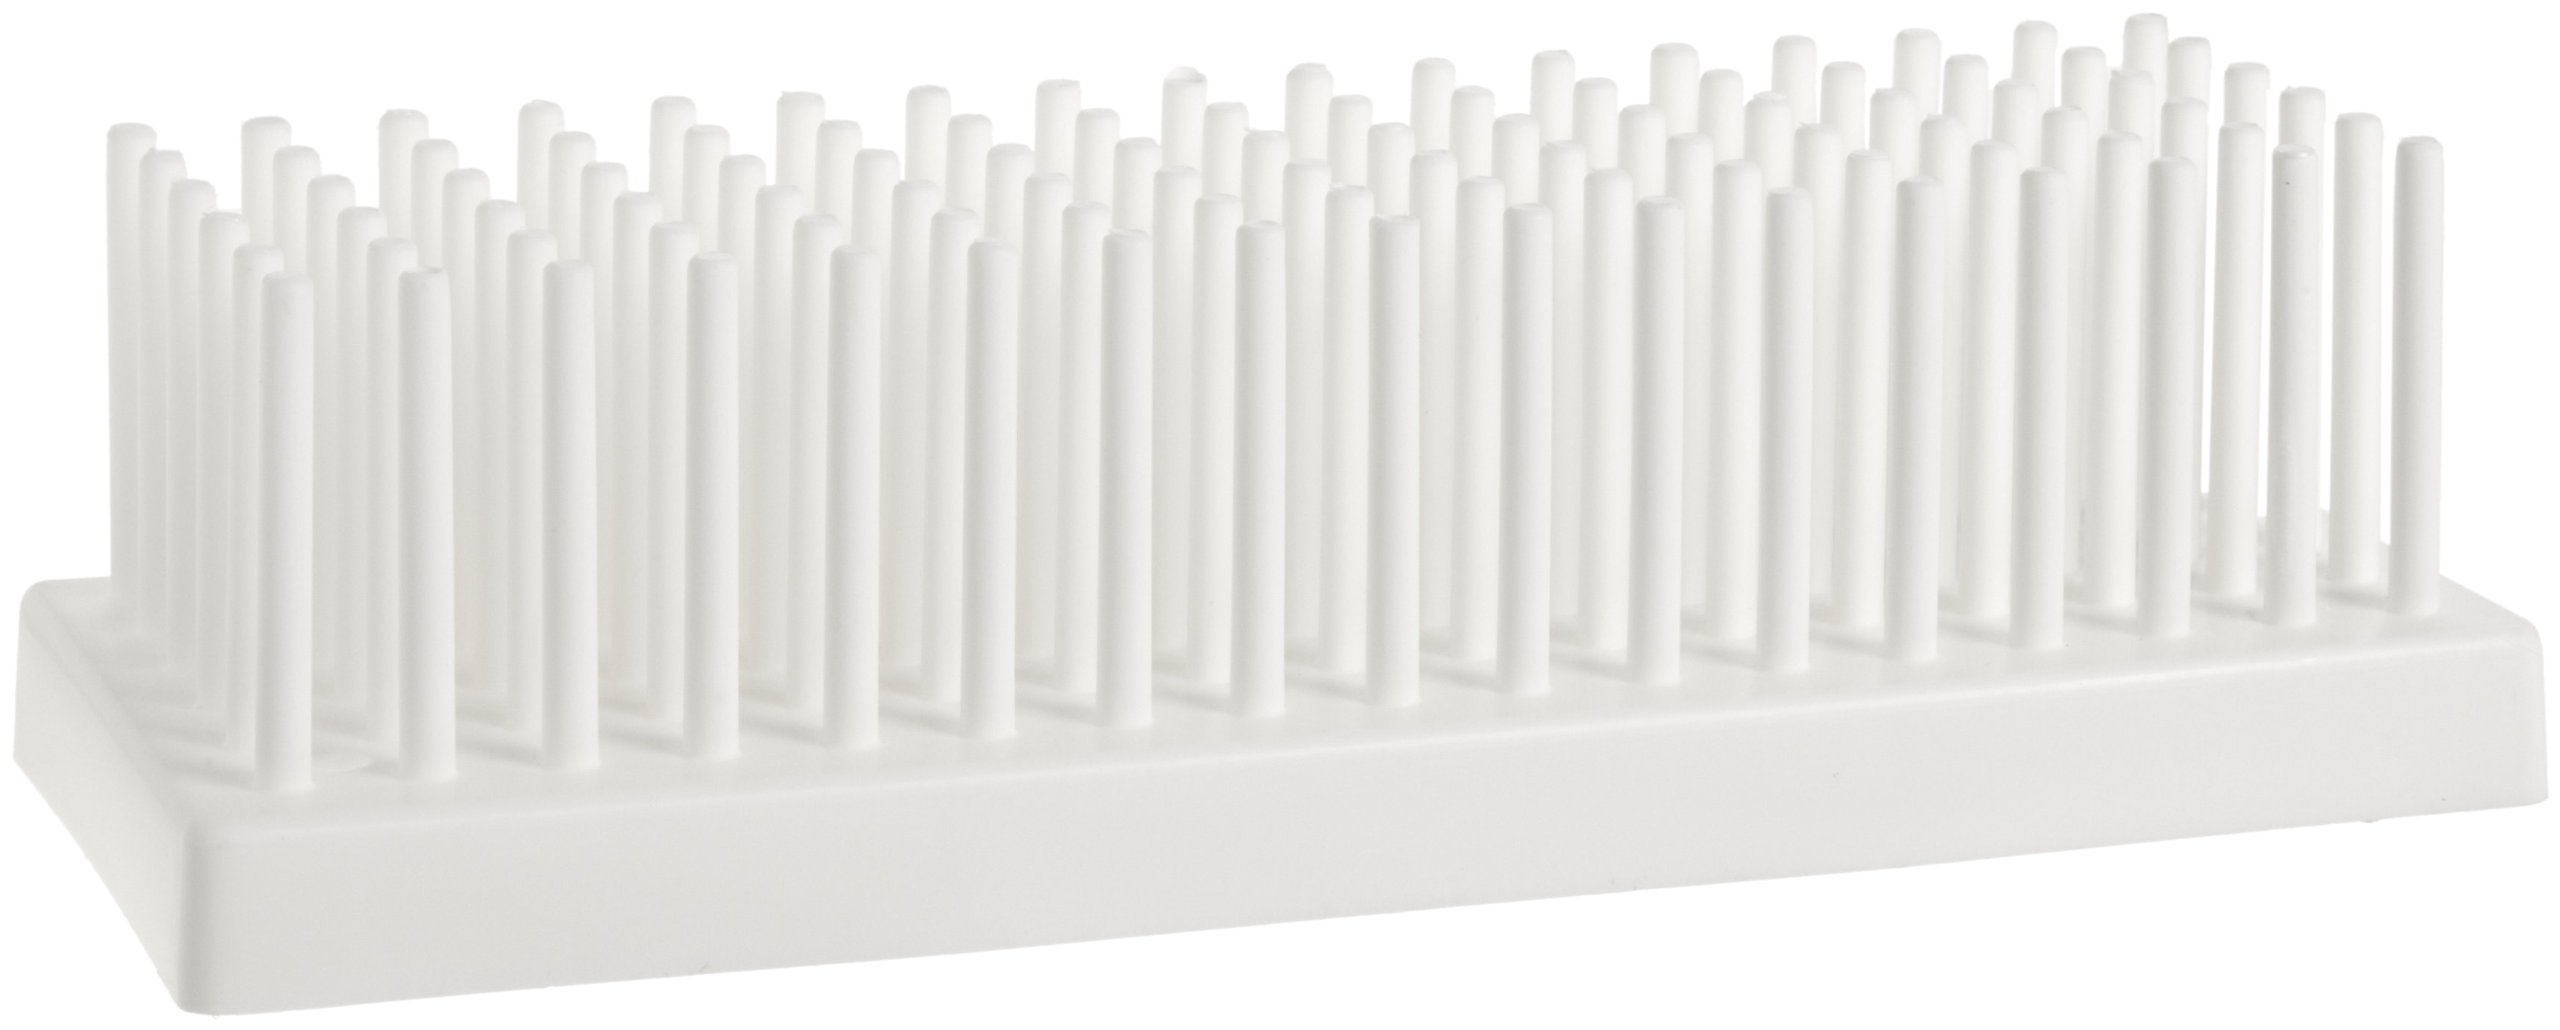 Bel-Art H18910-0102 Full-View Test Tube Support; 10-13mm, 80 Places, Polypropylene by SP Scienceware